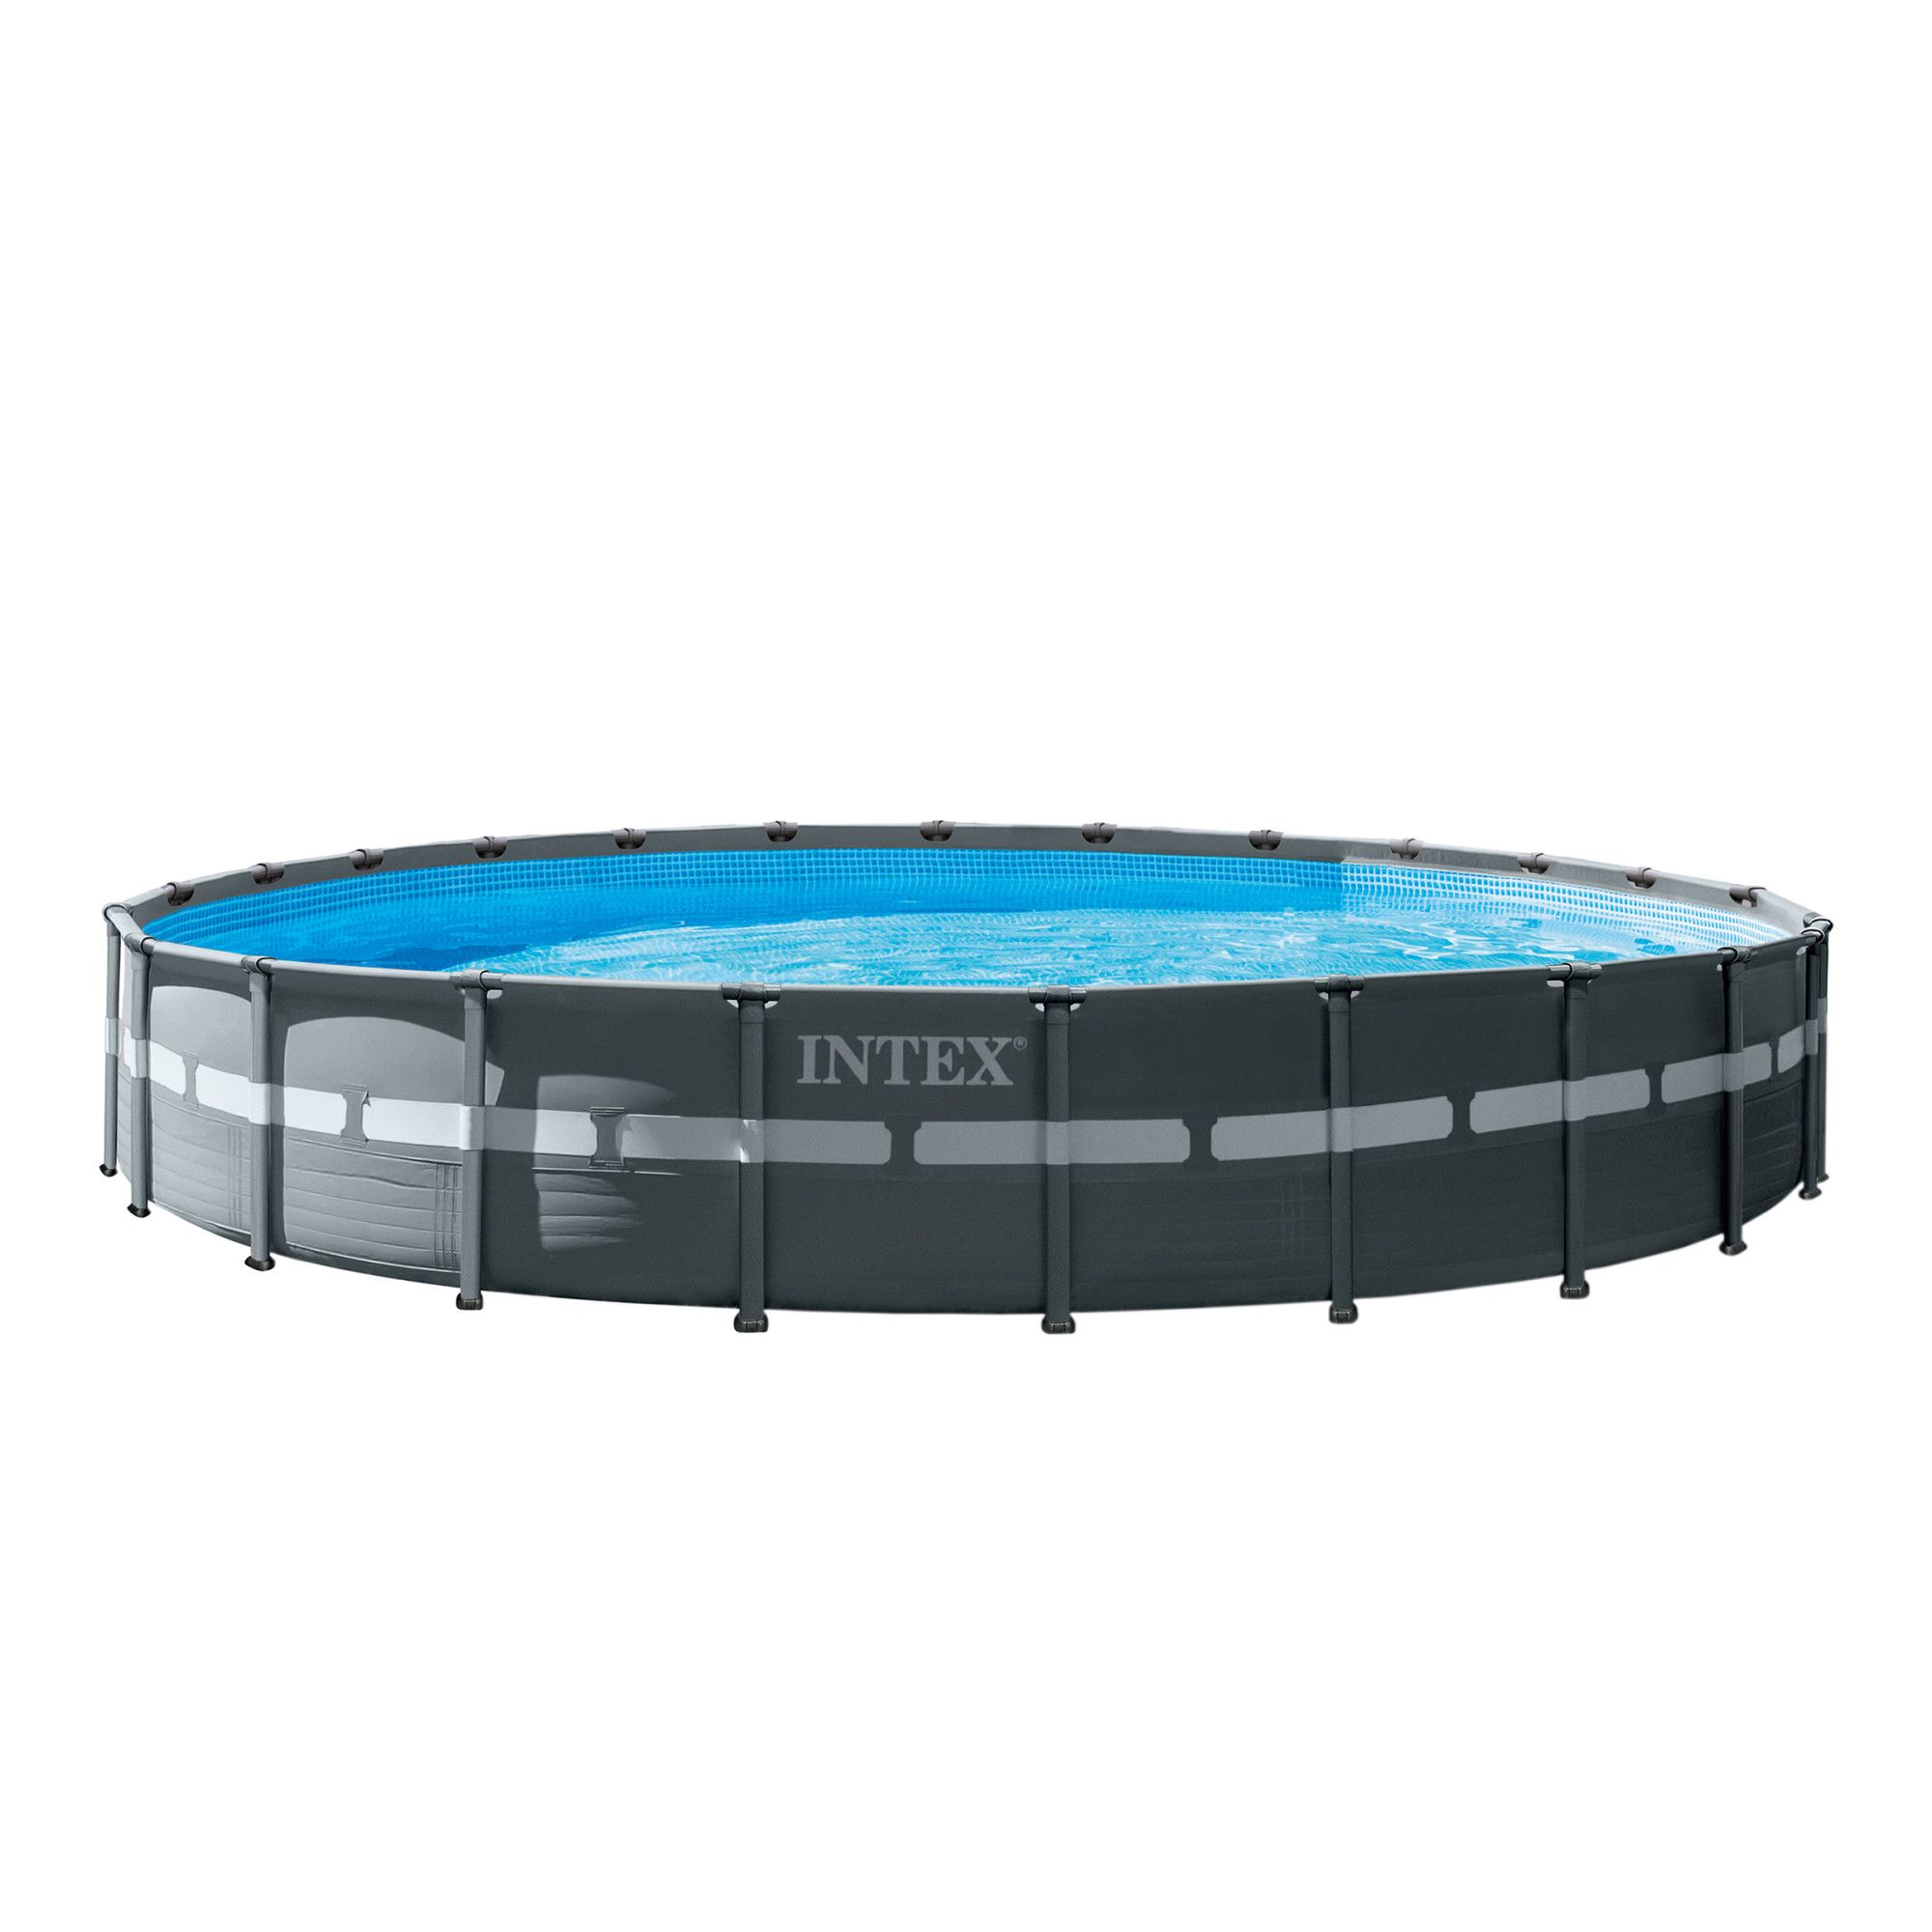 Piscina Intex Ultra Xtr Frame™ Set, Panou Protectie, Scara Inclusa, 6.1M X  1.2M dedans Piscine Intex 3.66